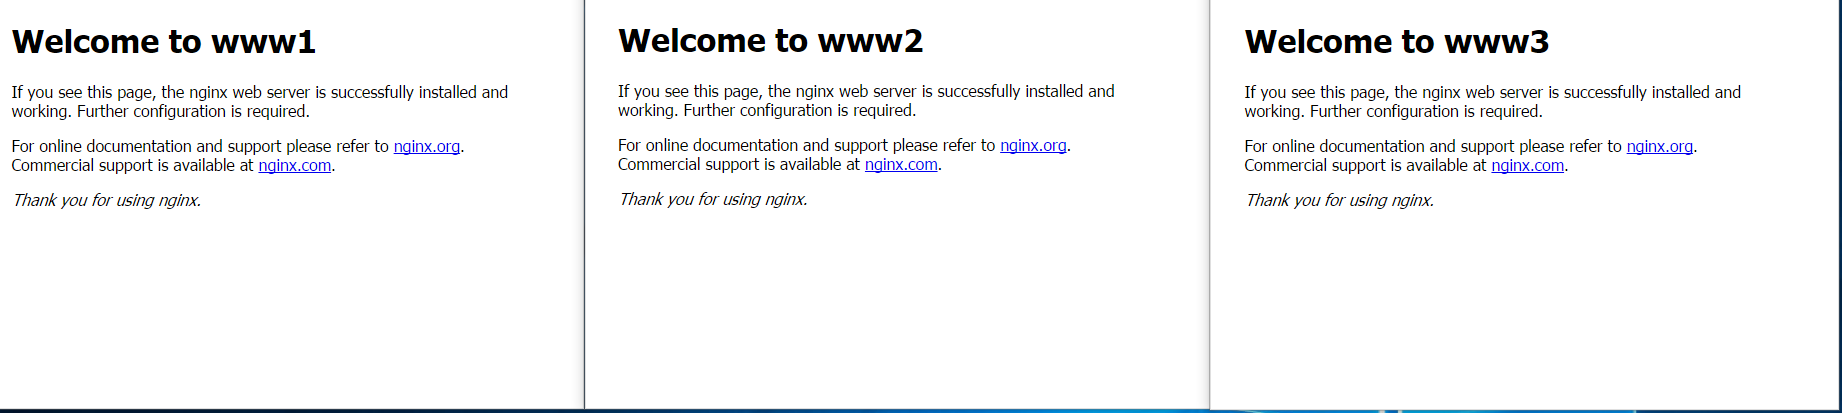 An example of my web servers: WWW1, WWW2 and WWW3